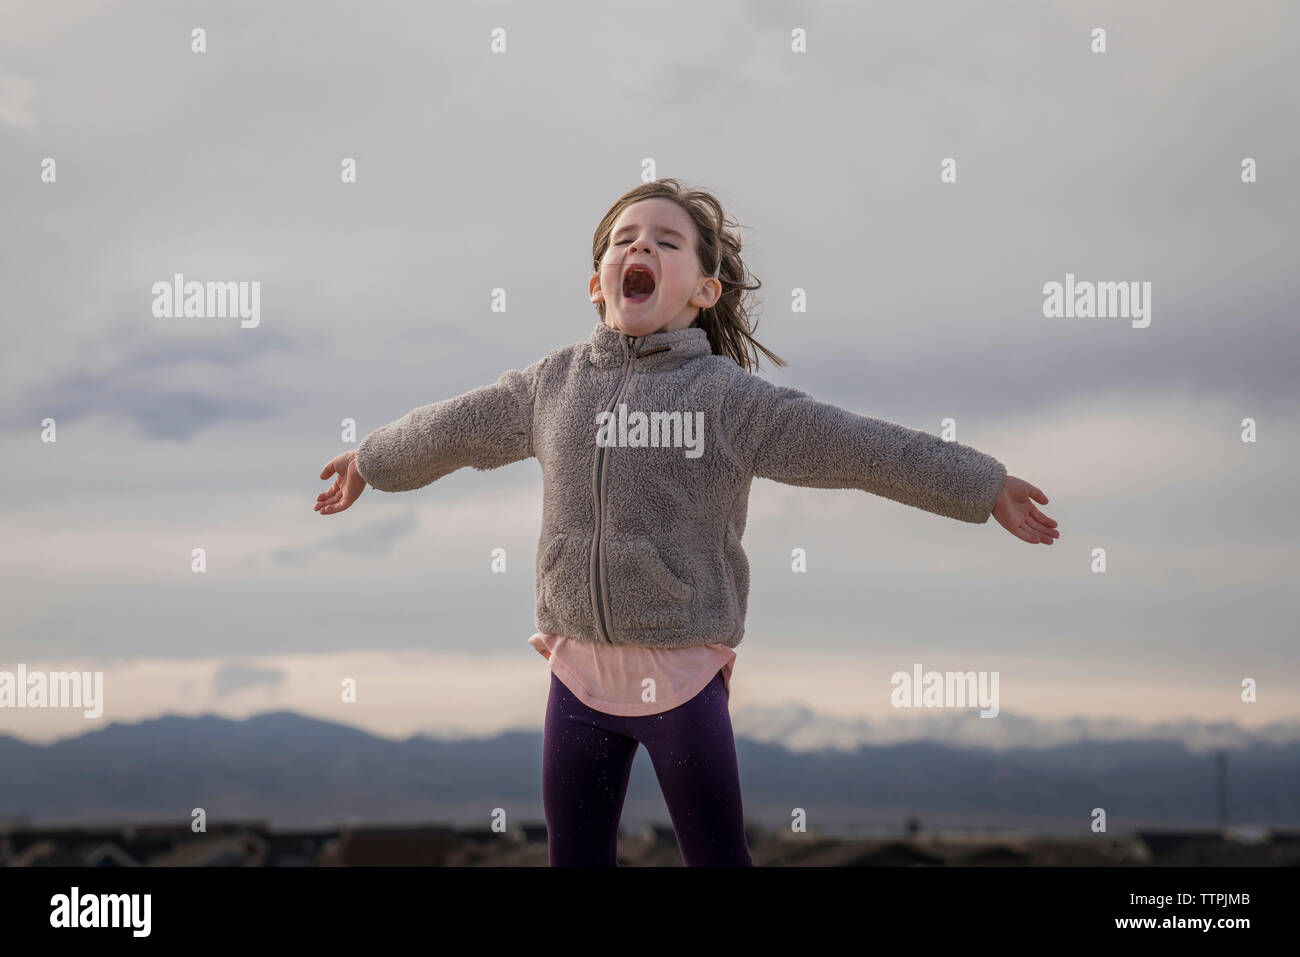 Happy girl with arms outstretched hurlant debout contre ciel nuageux Banque D'Images